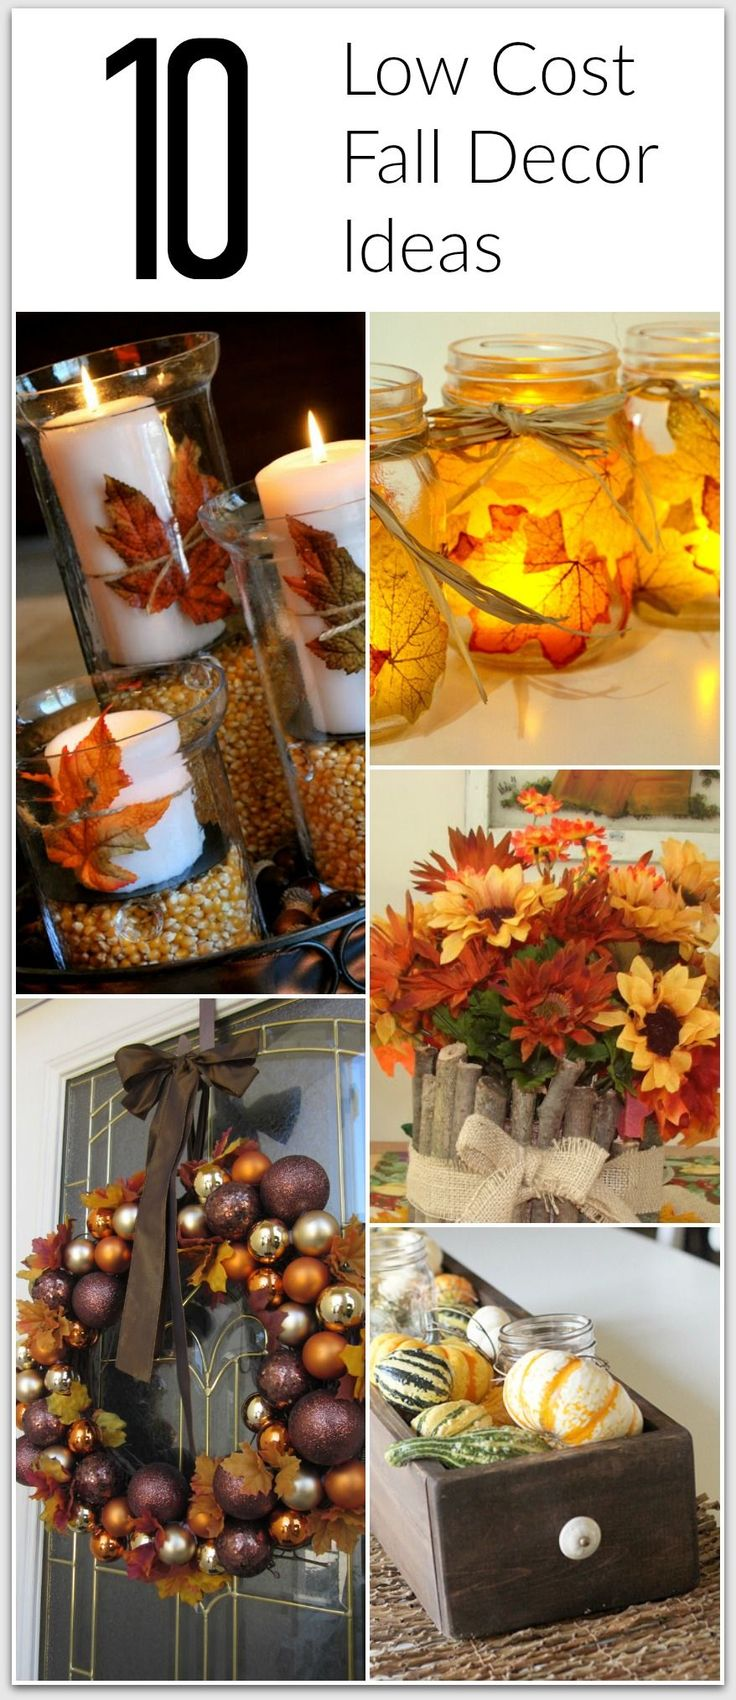 10 cheap fall decor ideas elegant fall decor thanksgiving crafts fall